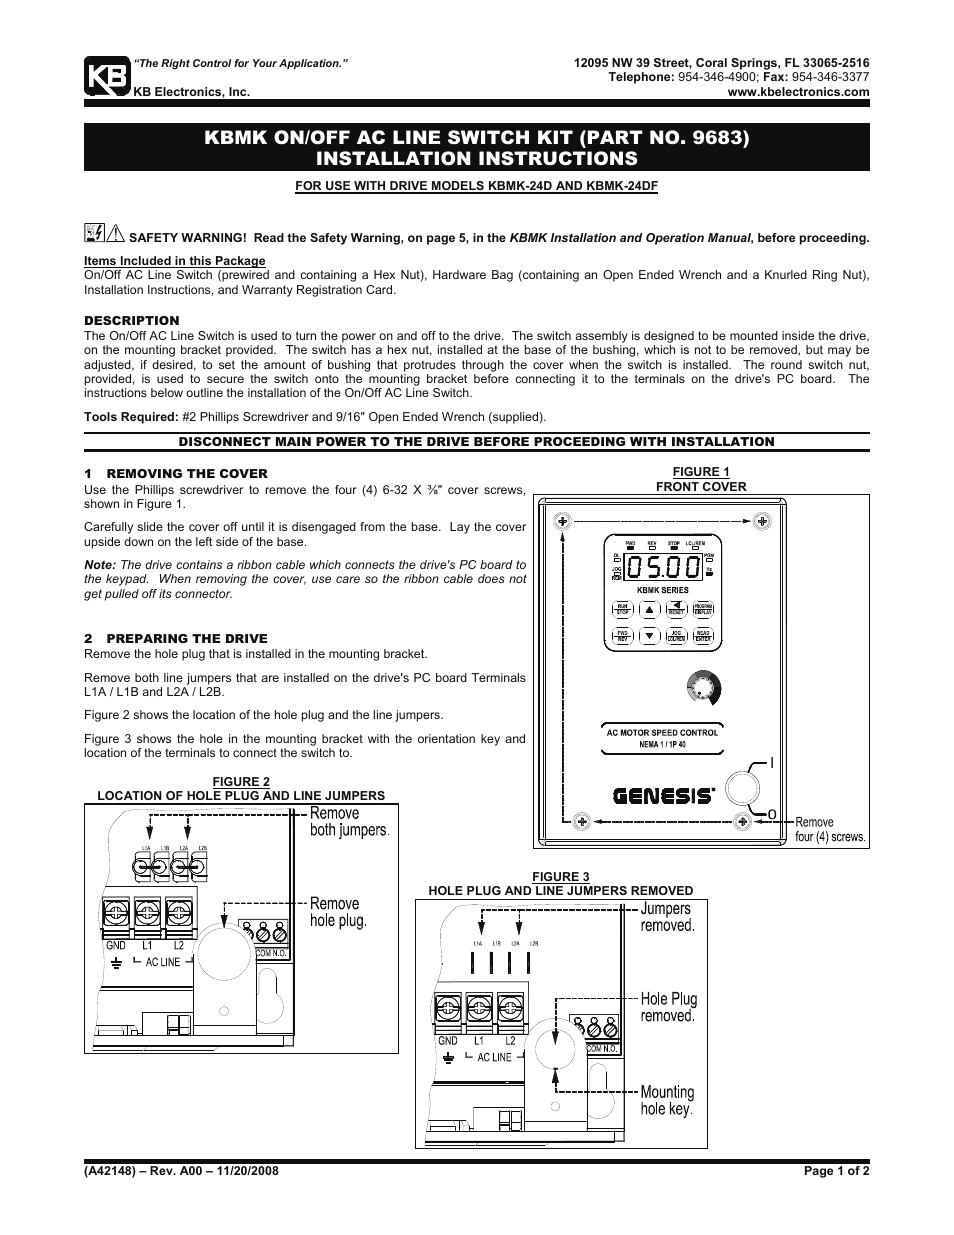 Wiring An On Off Switch Page 2 Manual Guide